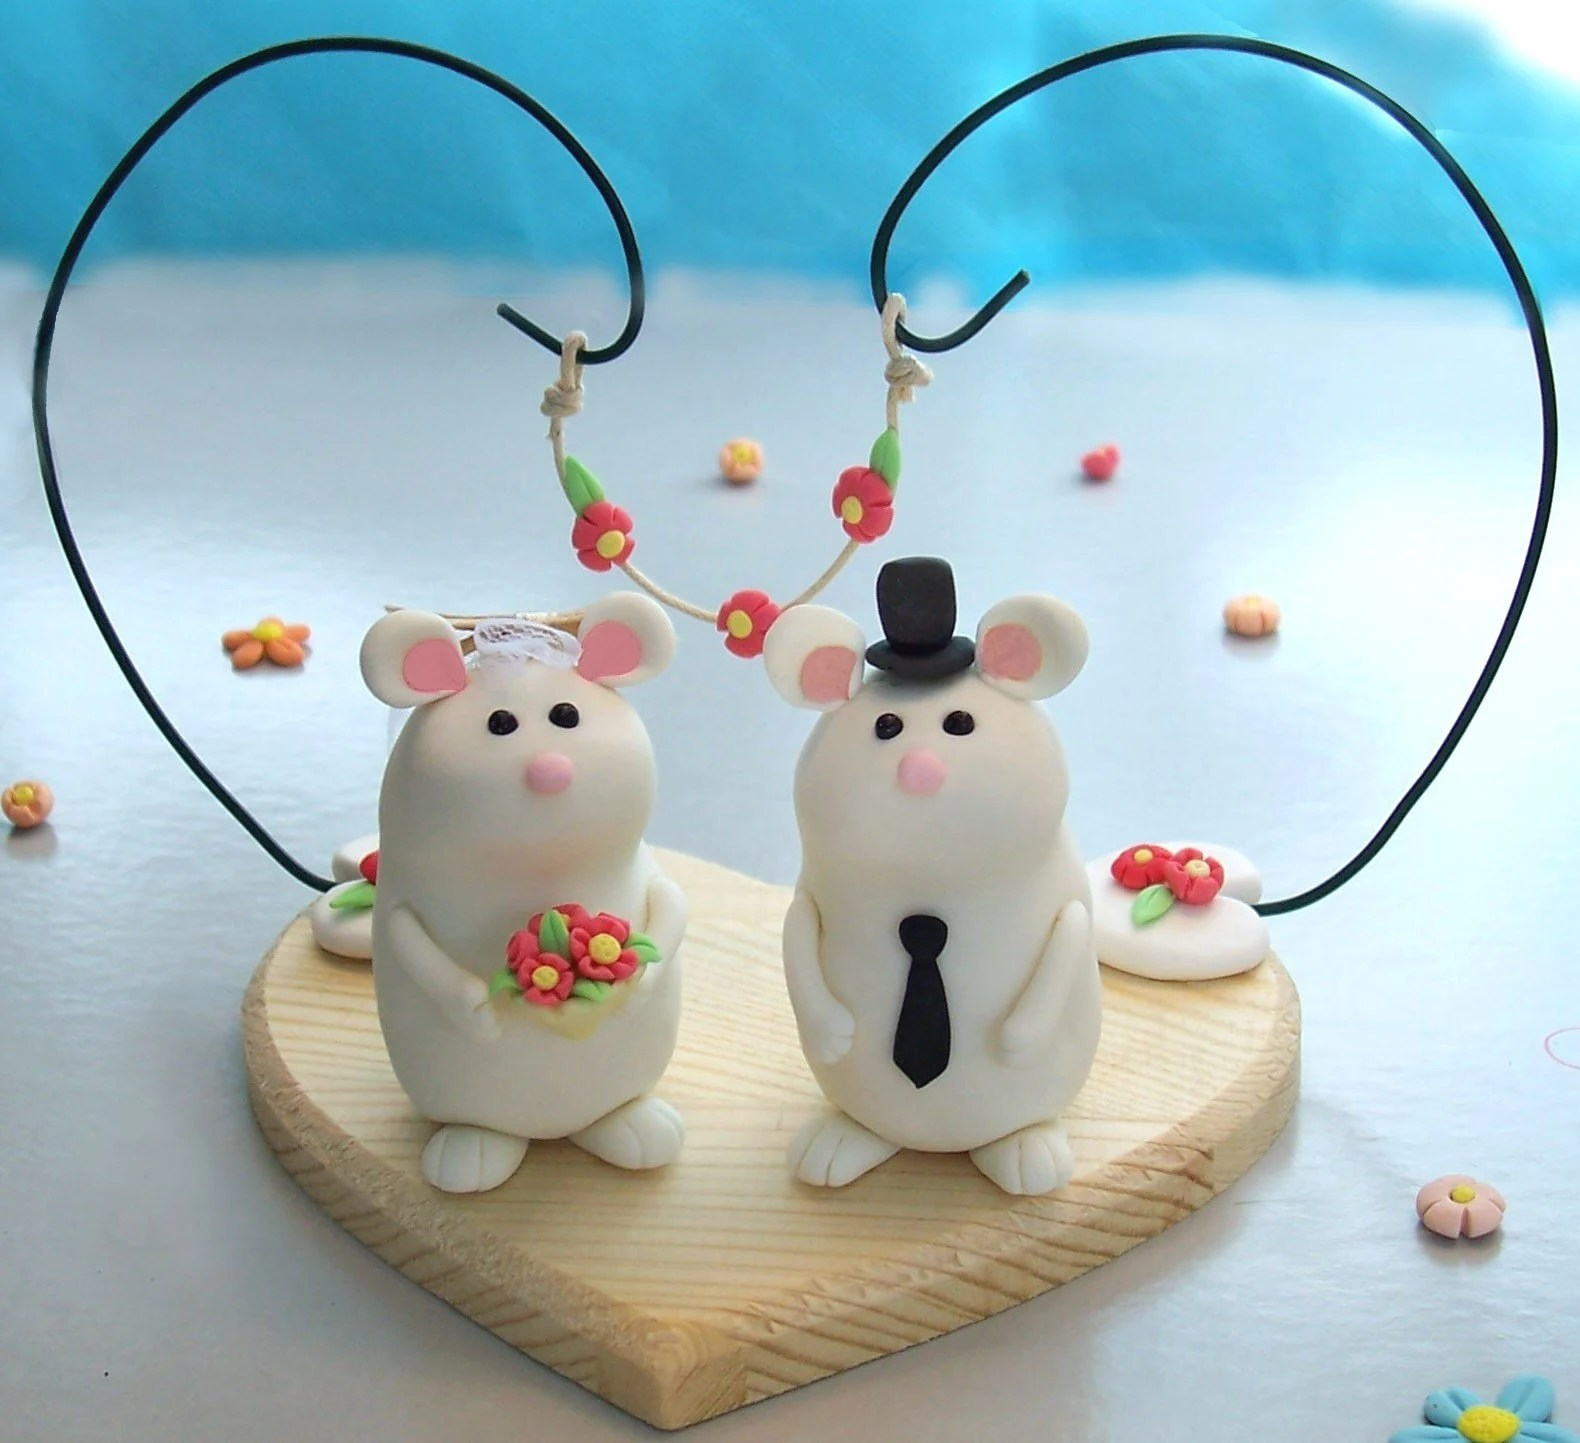 Unique, cute mice wedding cake topper, floral decoration and wooden base